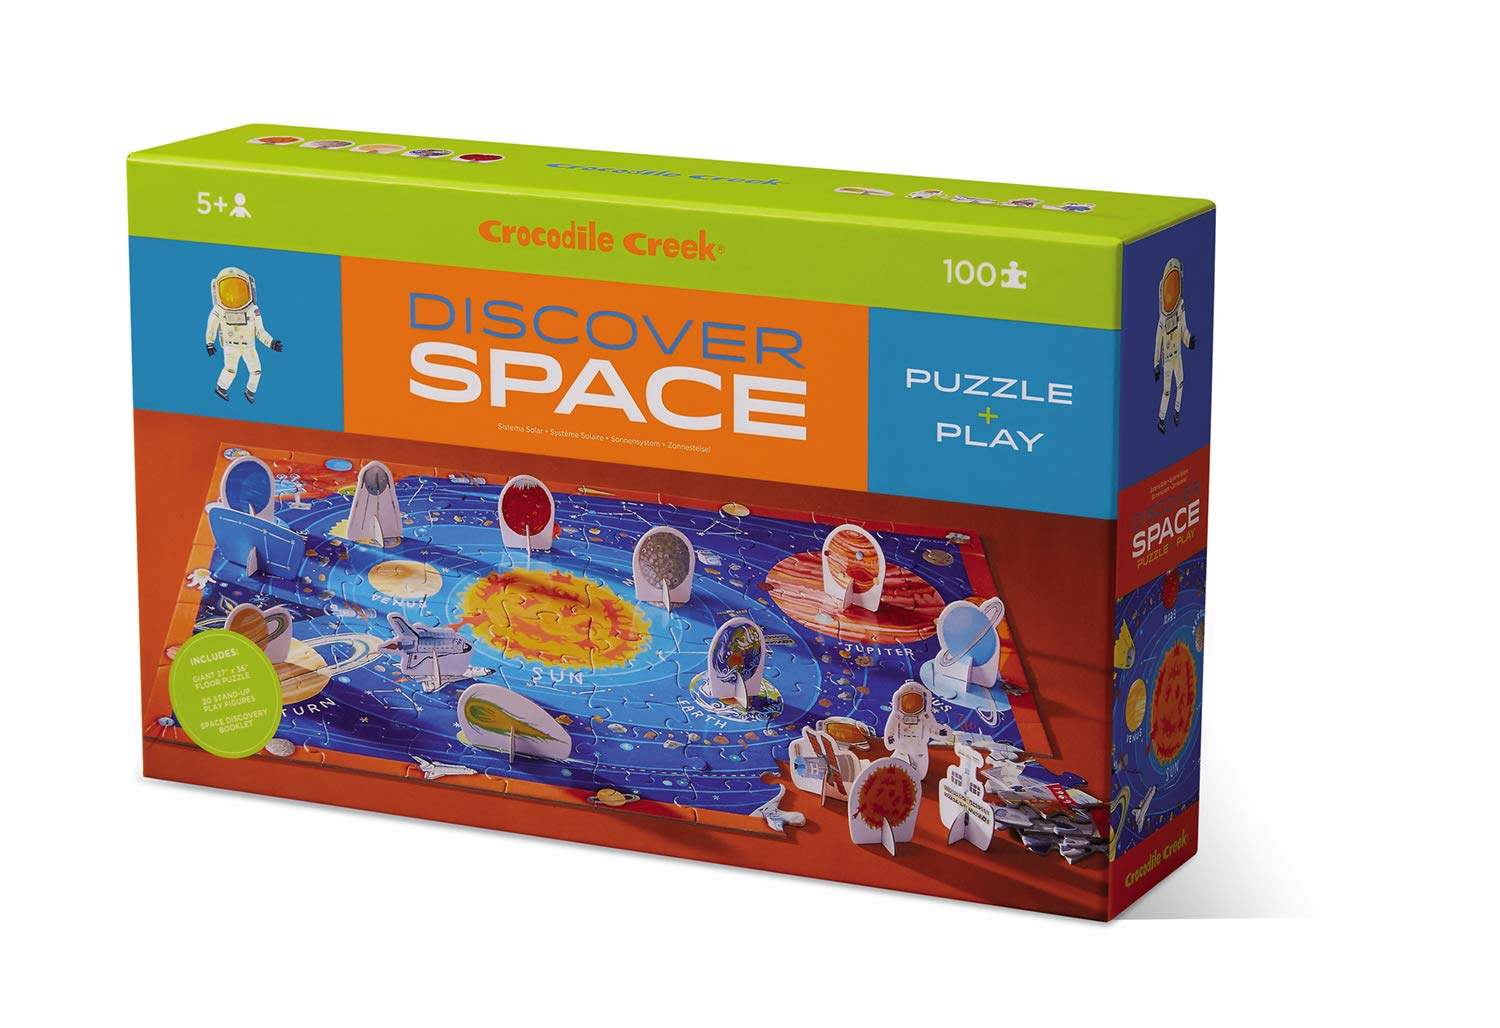 Crocodile Creek 2920-7 Discover Space 100 Piece Educational Puzzle with Fact Book, Blue by Crocodile Creek